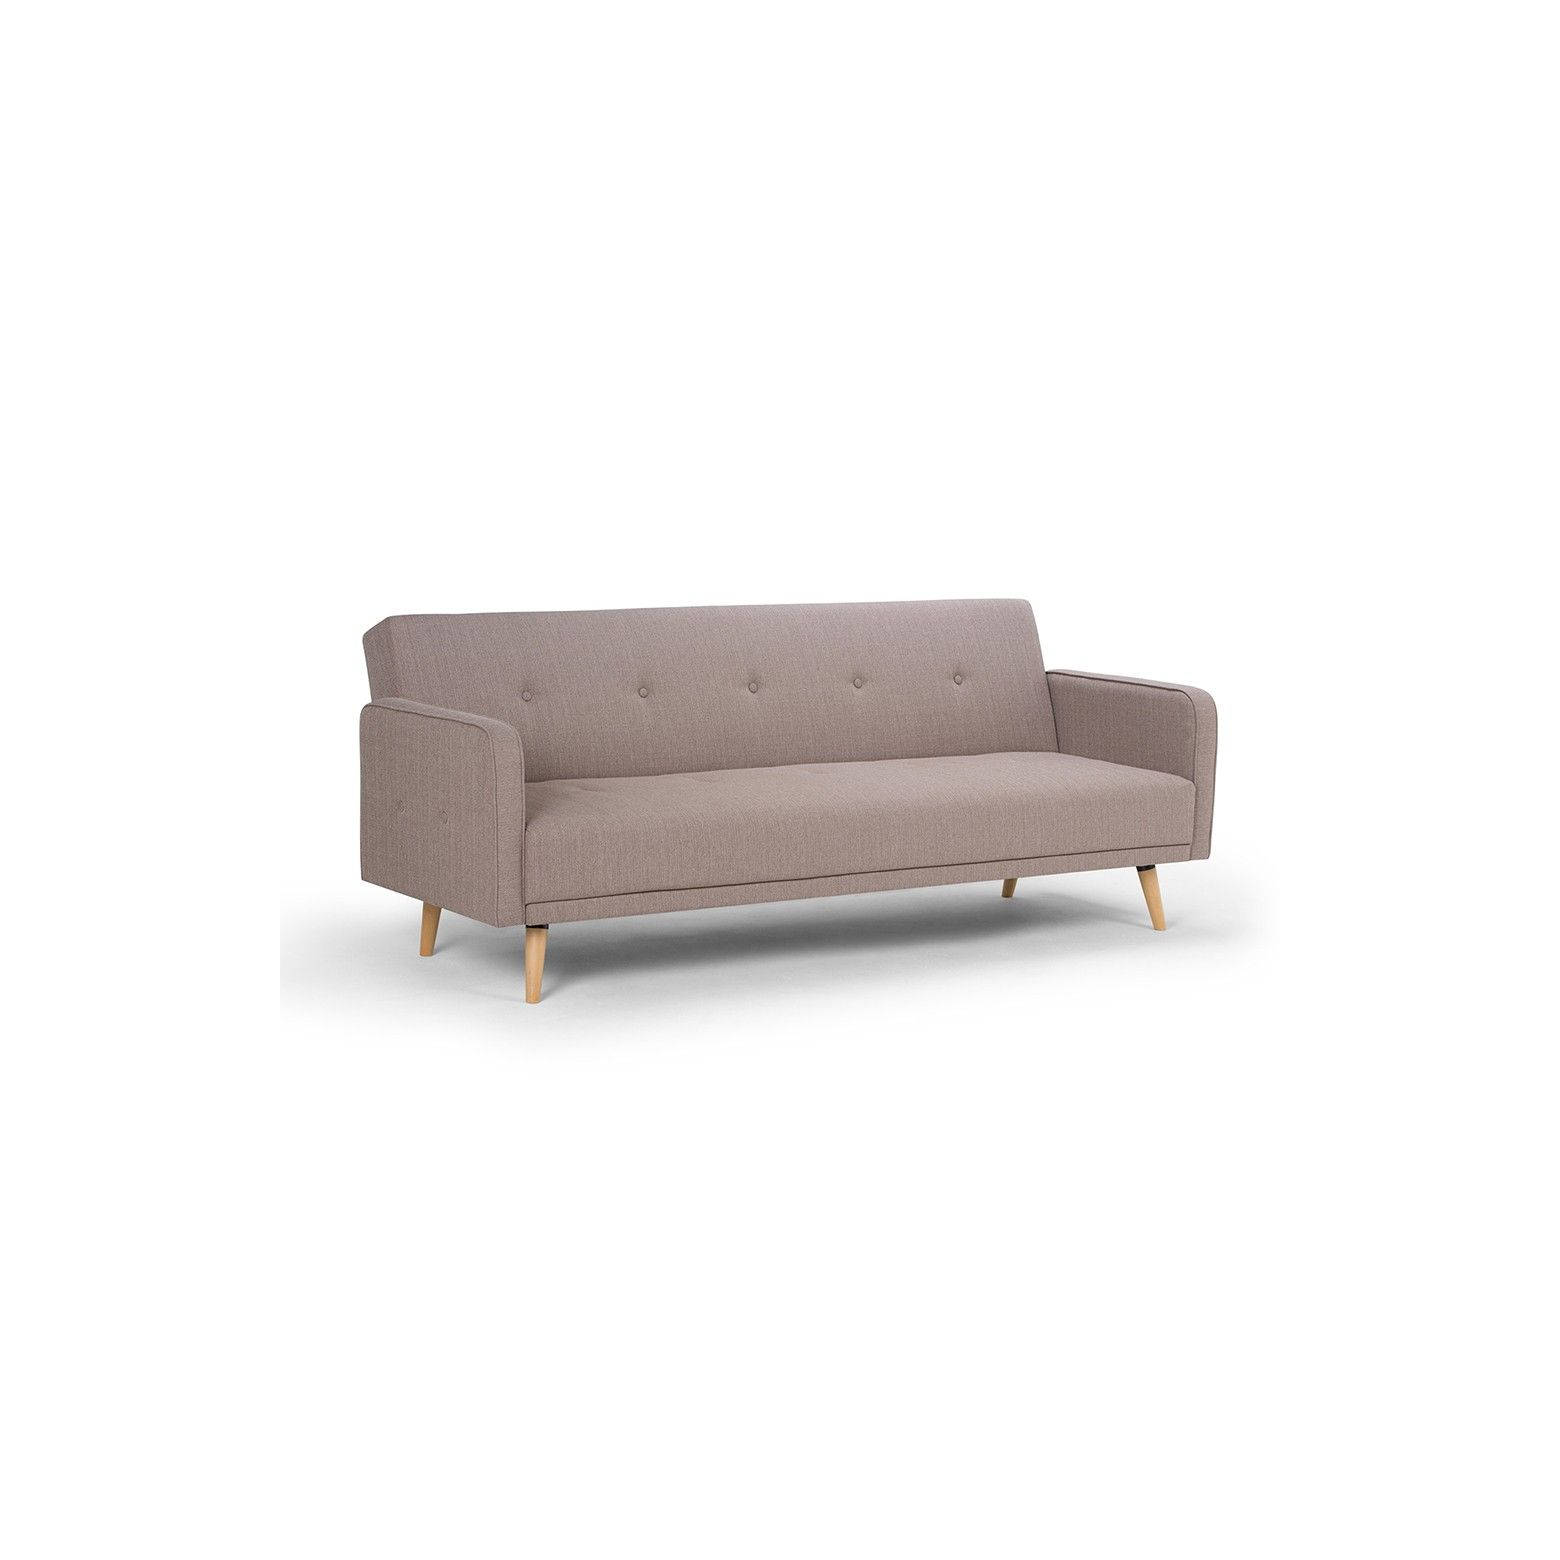 Modern Style And Practicality Make The Courtney Sofa Bed A